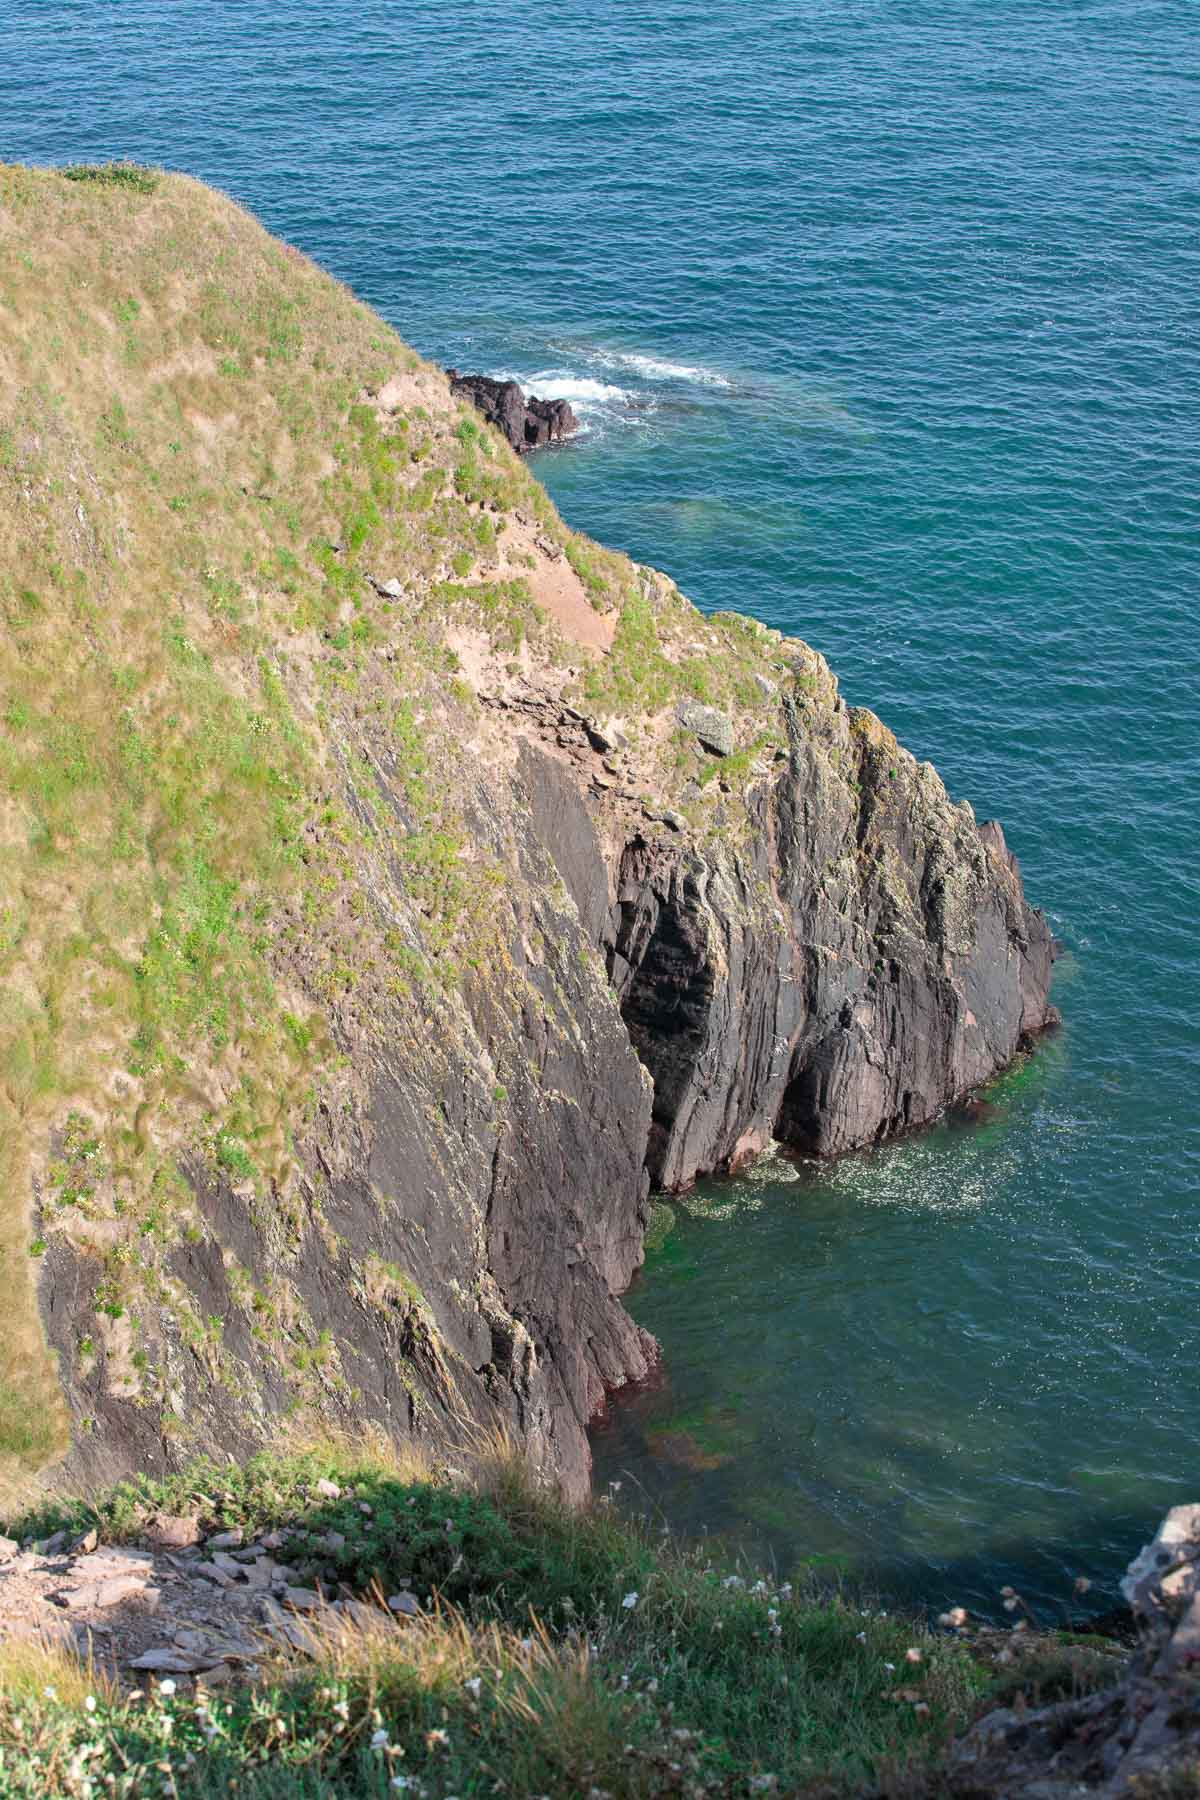 Photo of the cliffs at Ballycotton Cliff Walk in East Cork, Ireland.